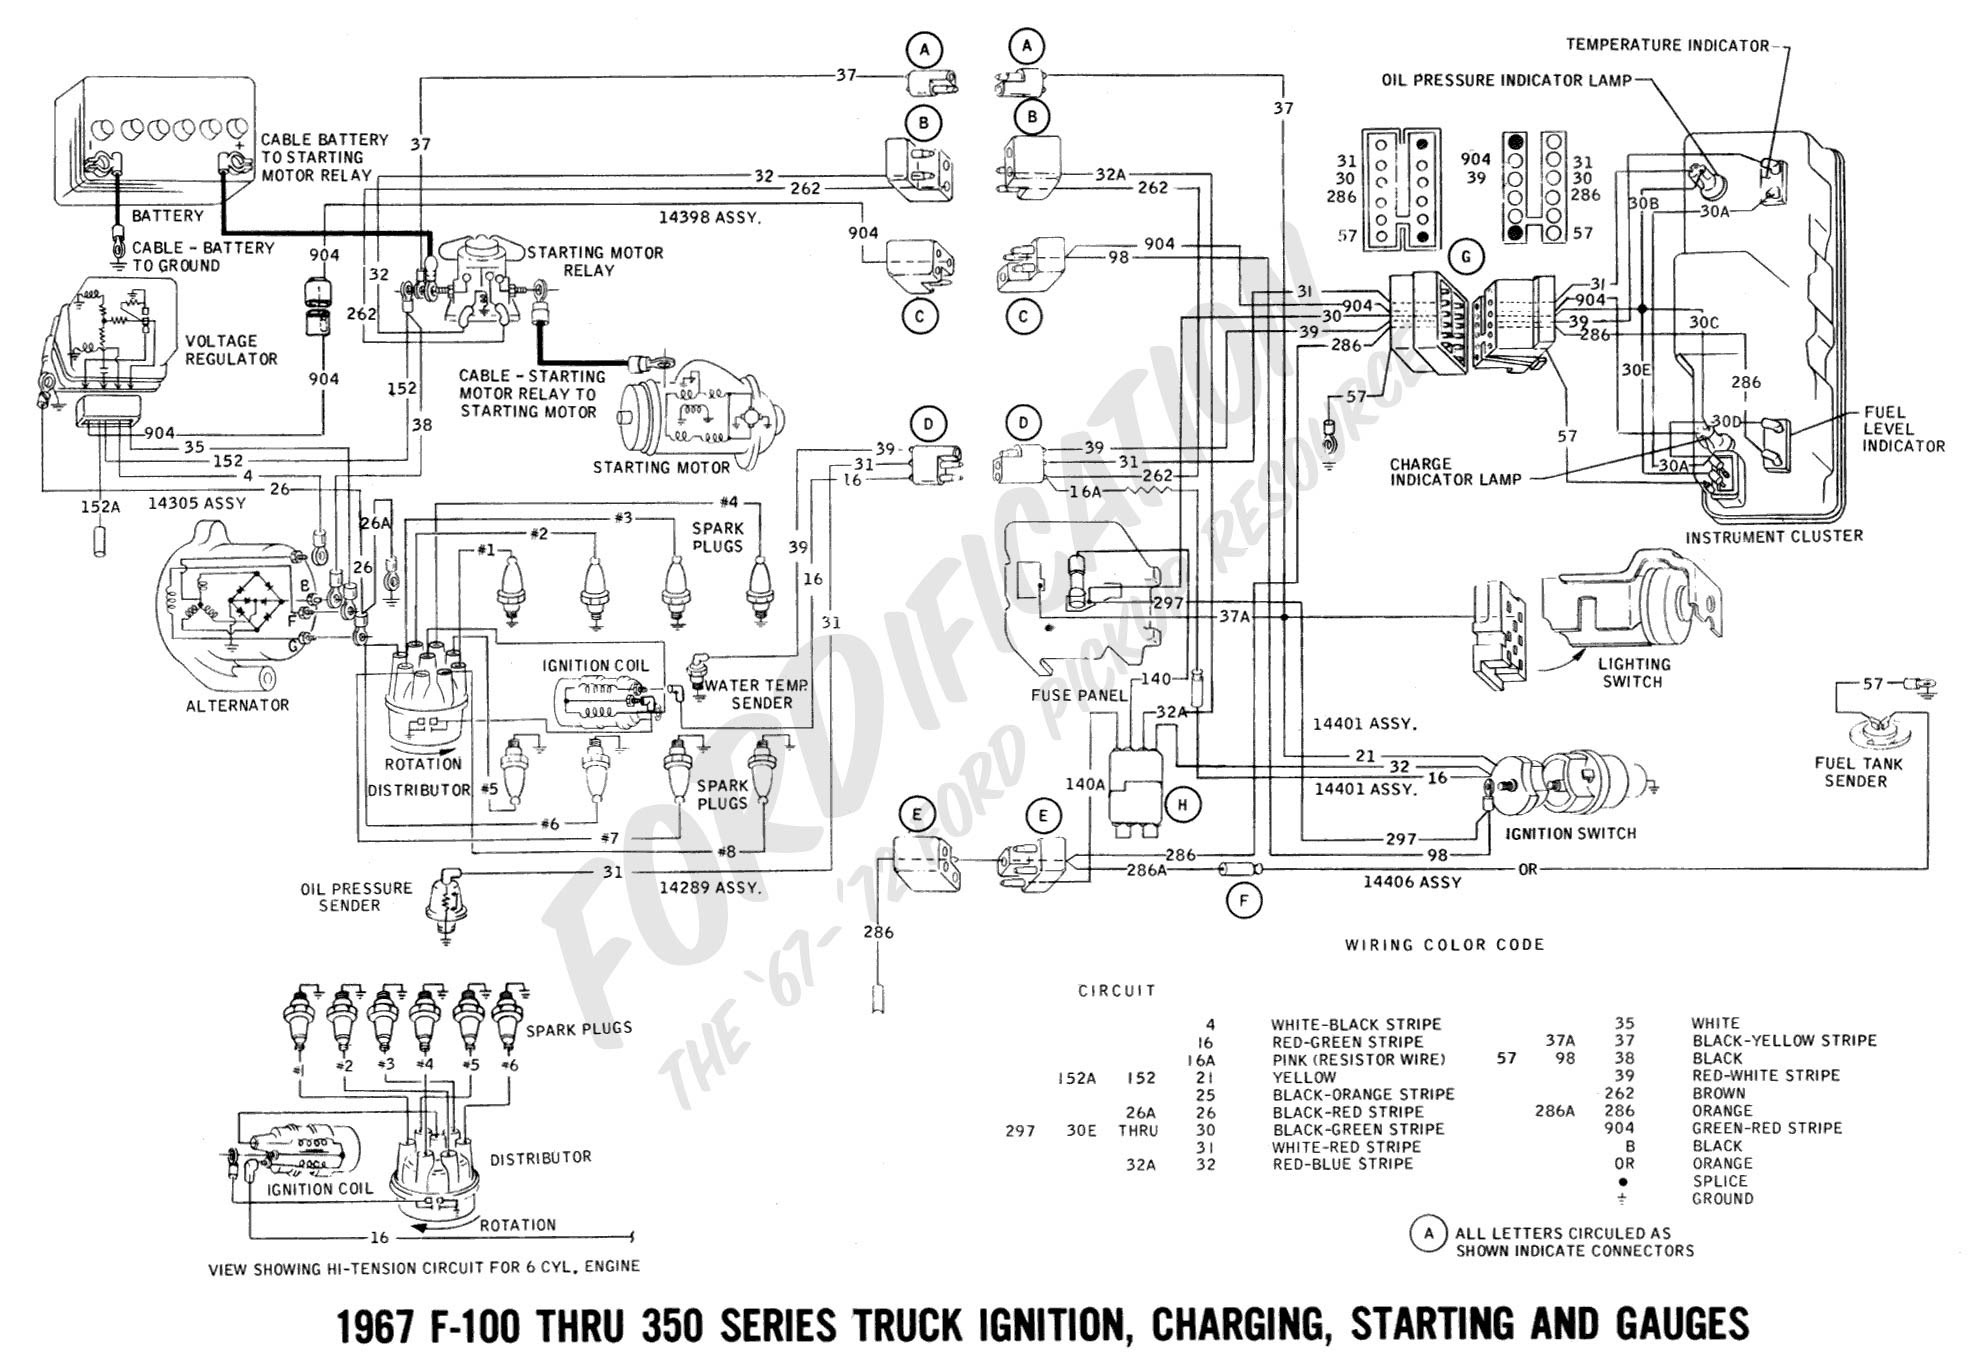 1969 Ford F100 Fuse Box 1990 Ford Bronco Engine Diagram Jimny 2014ok Jeanjaures37 Fr